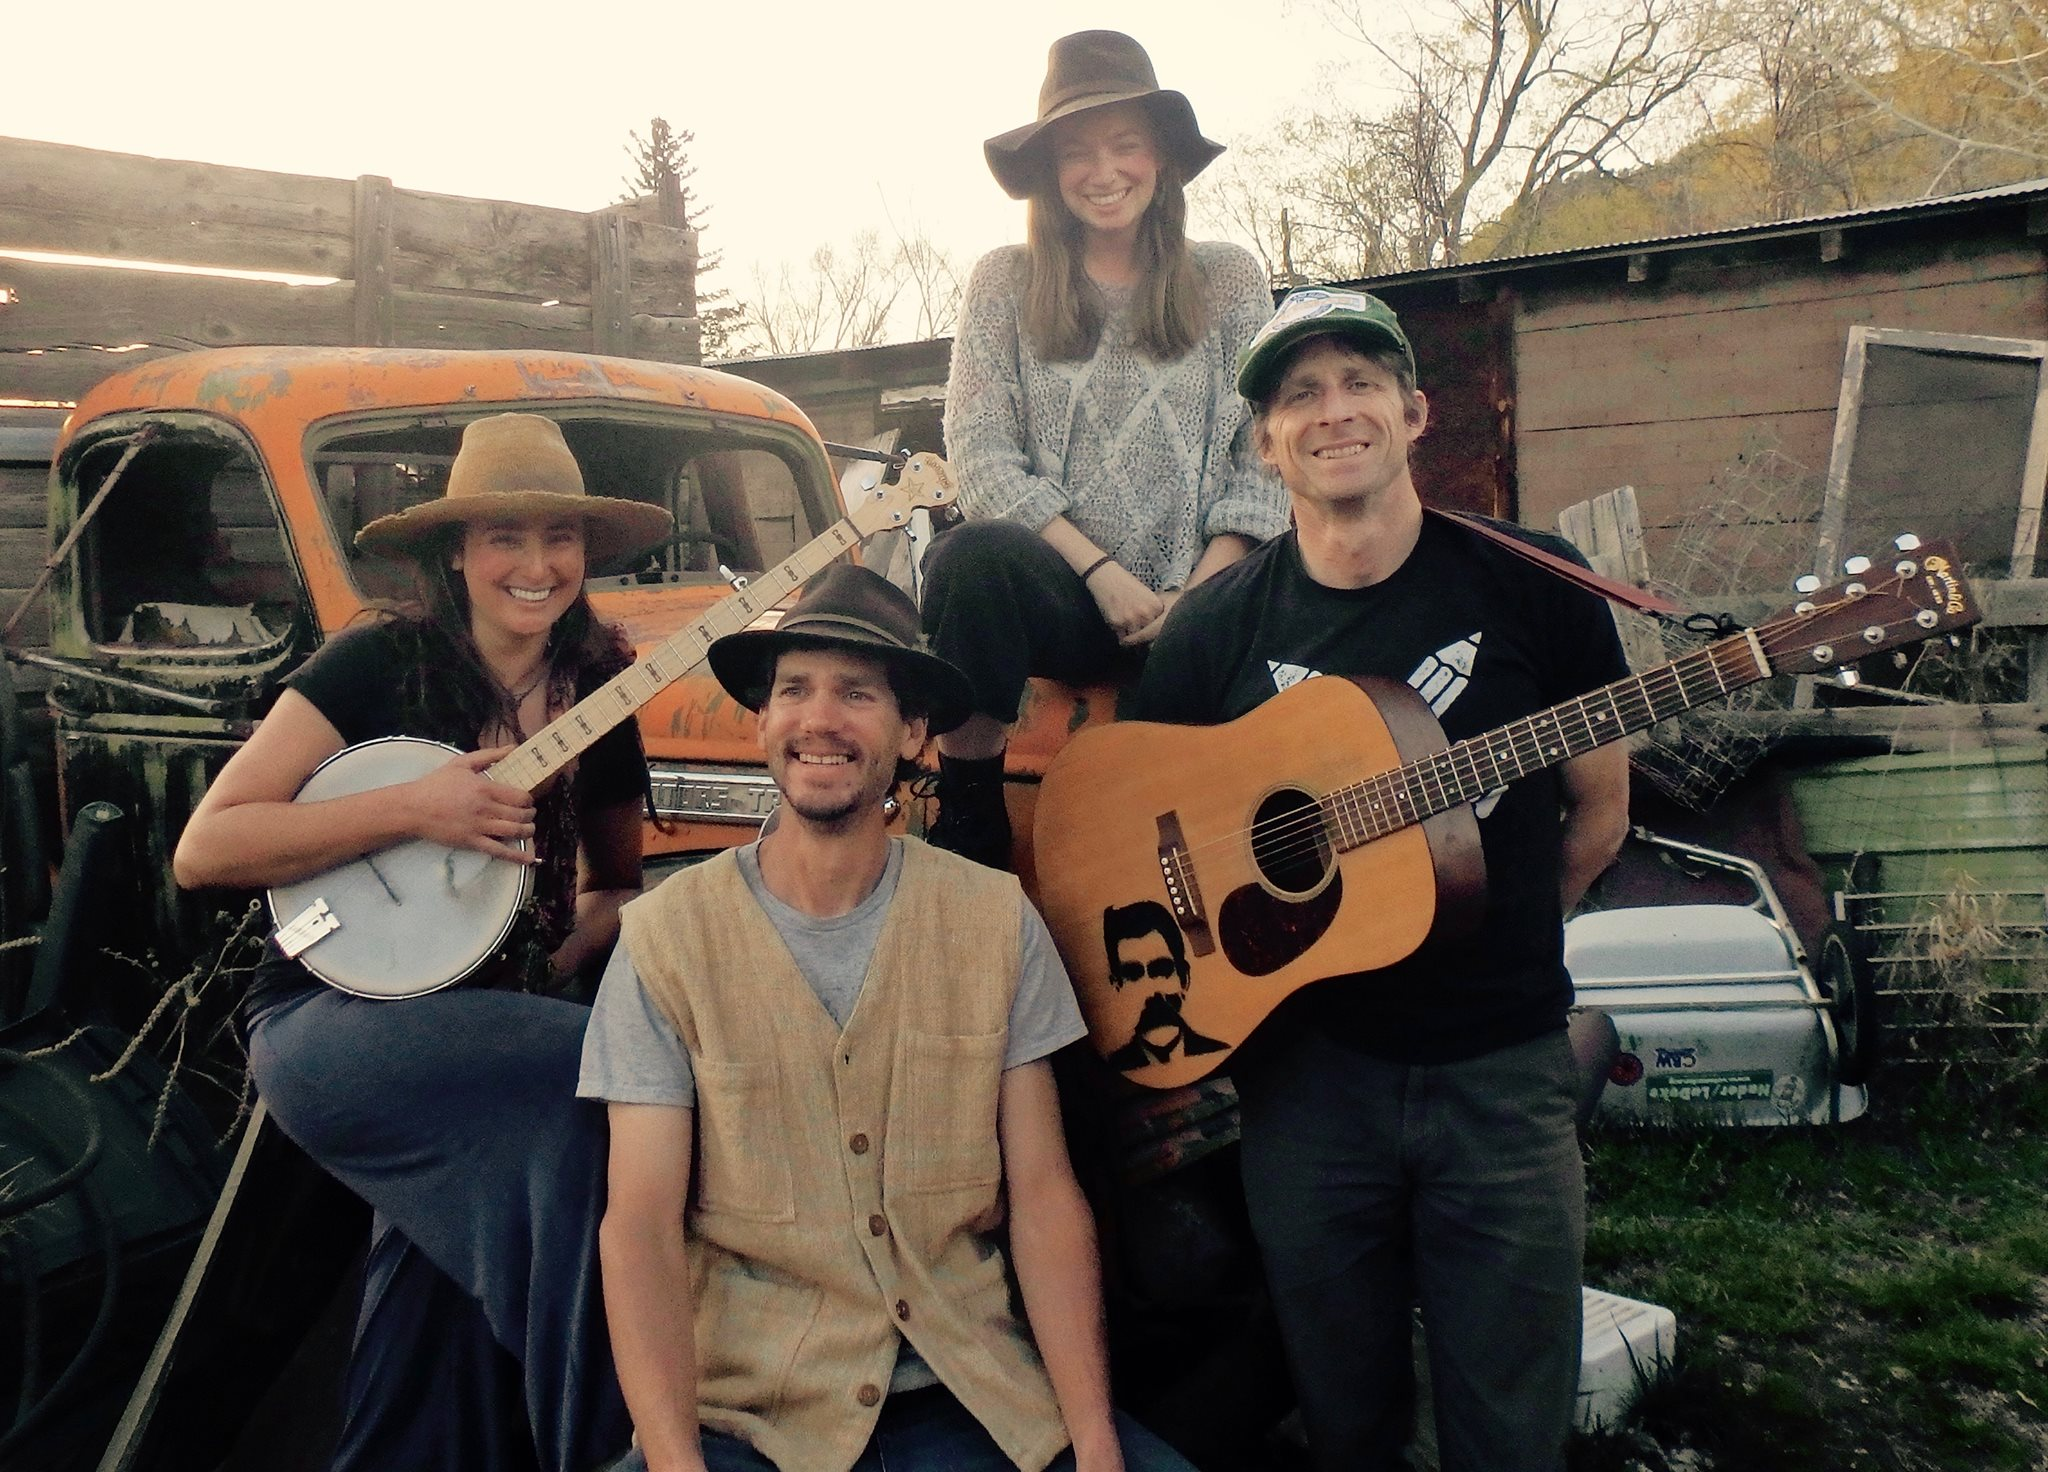 4 Raccoon Fight - Raccoon Fight creates foot stomping mountain tunes with raw, original lyrics, intricate harmonies, African-inspired percussion, bubbly banjo and guitar.